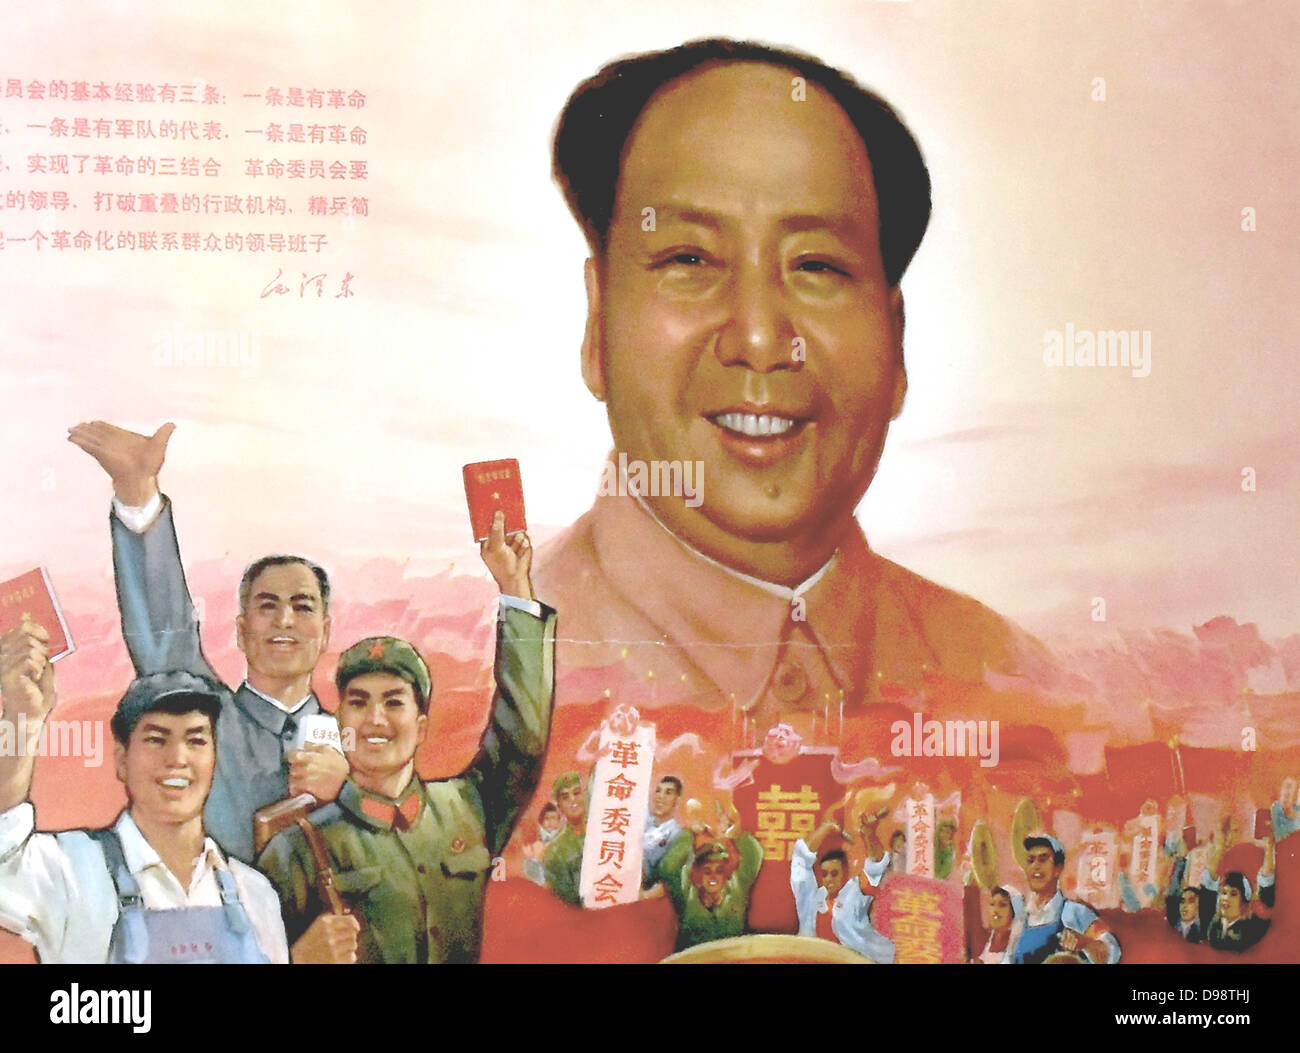 Communist Mao Tse Tung /& Wife Poster During the Culture Revolutionary